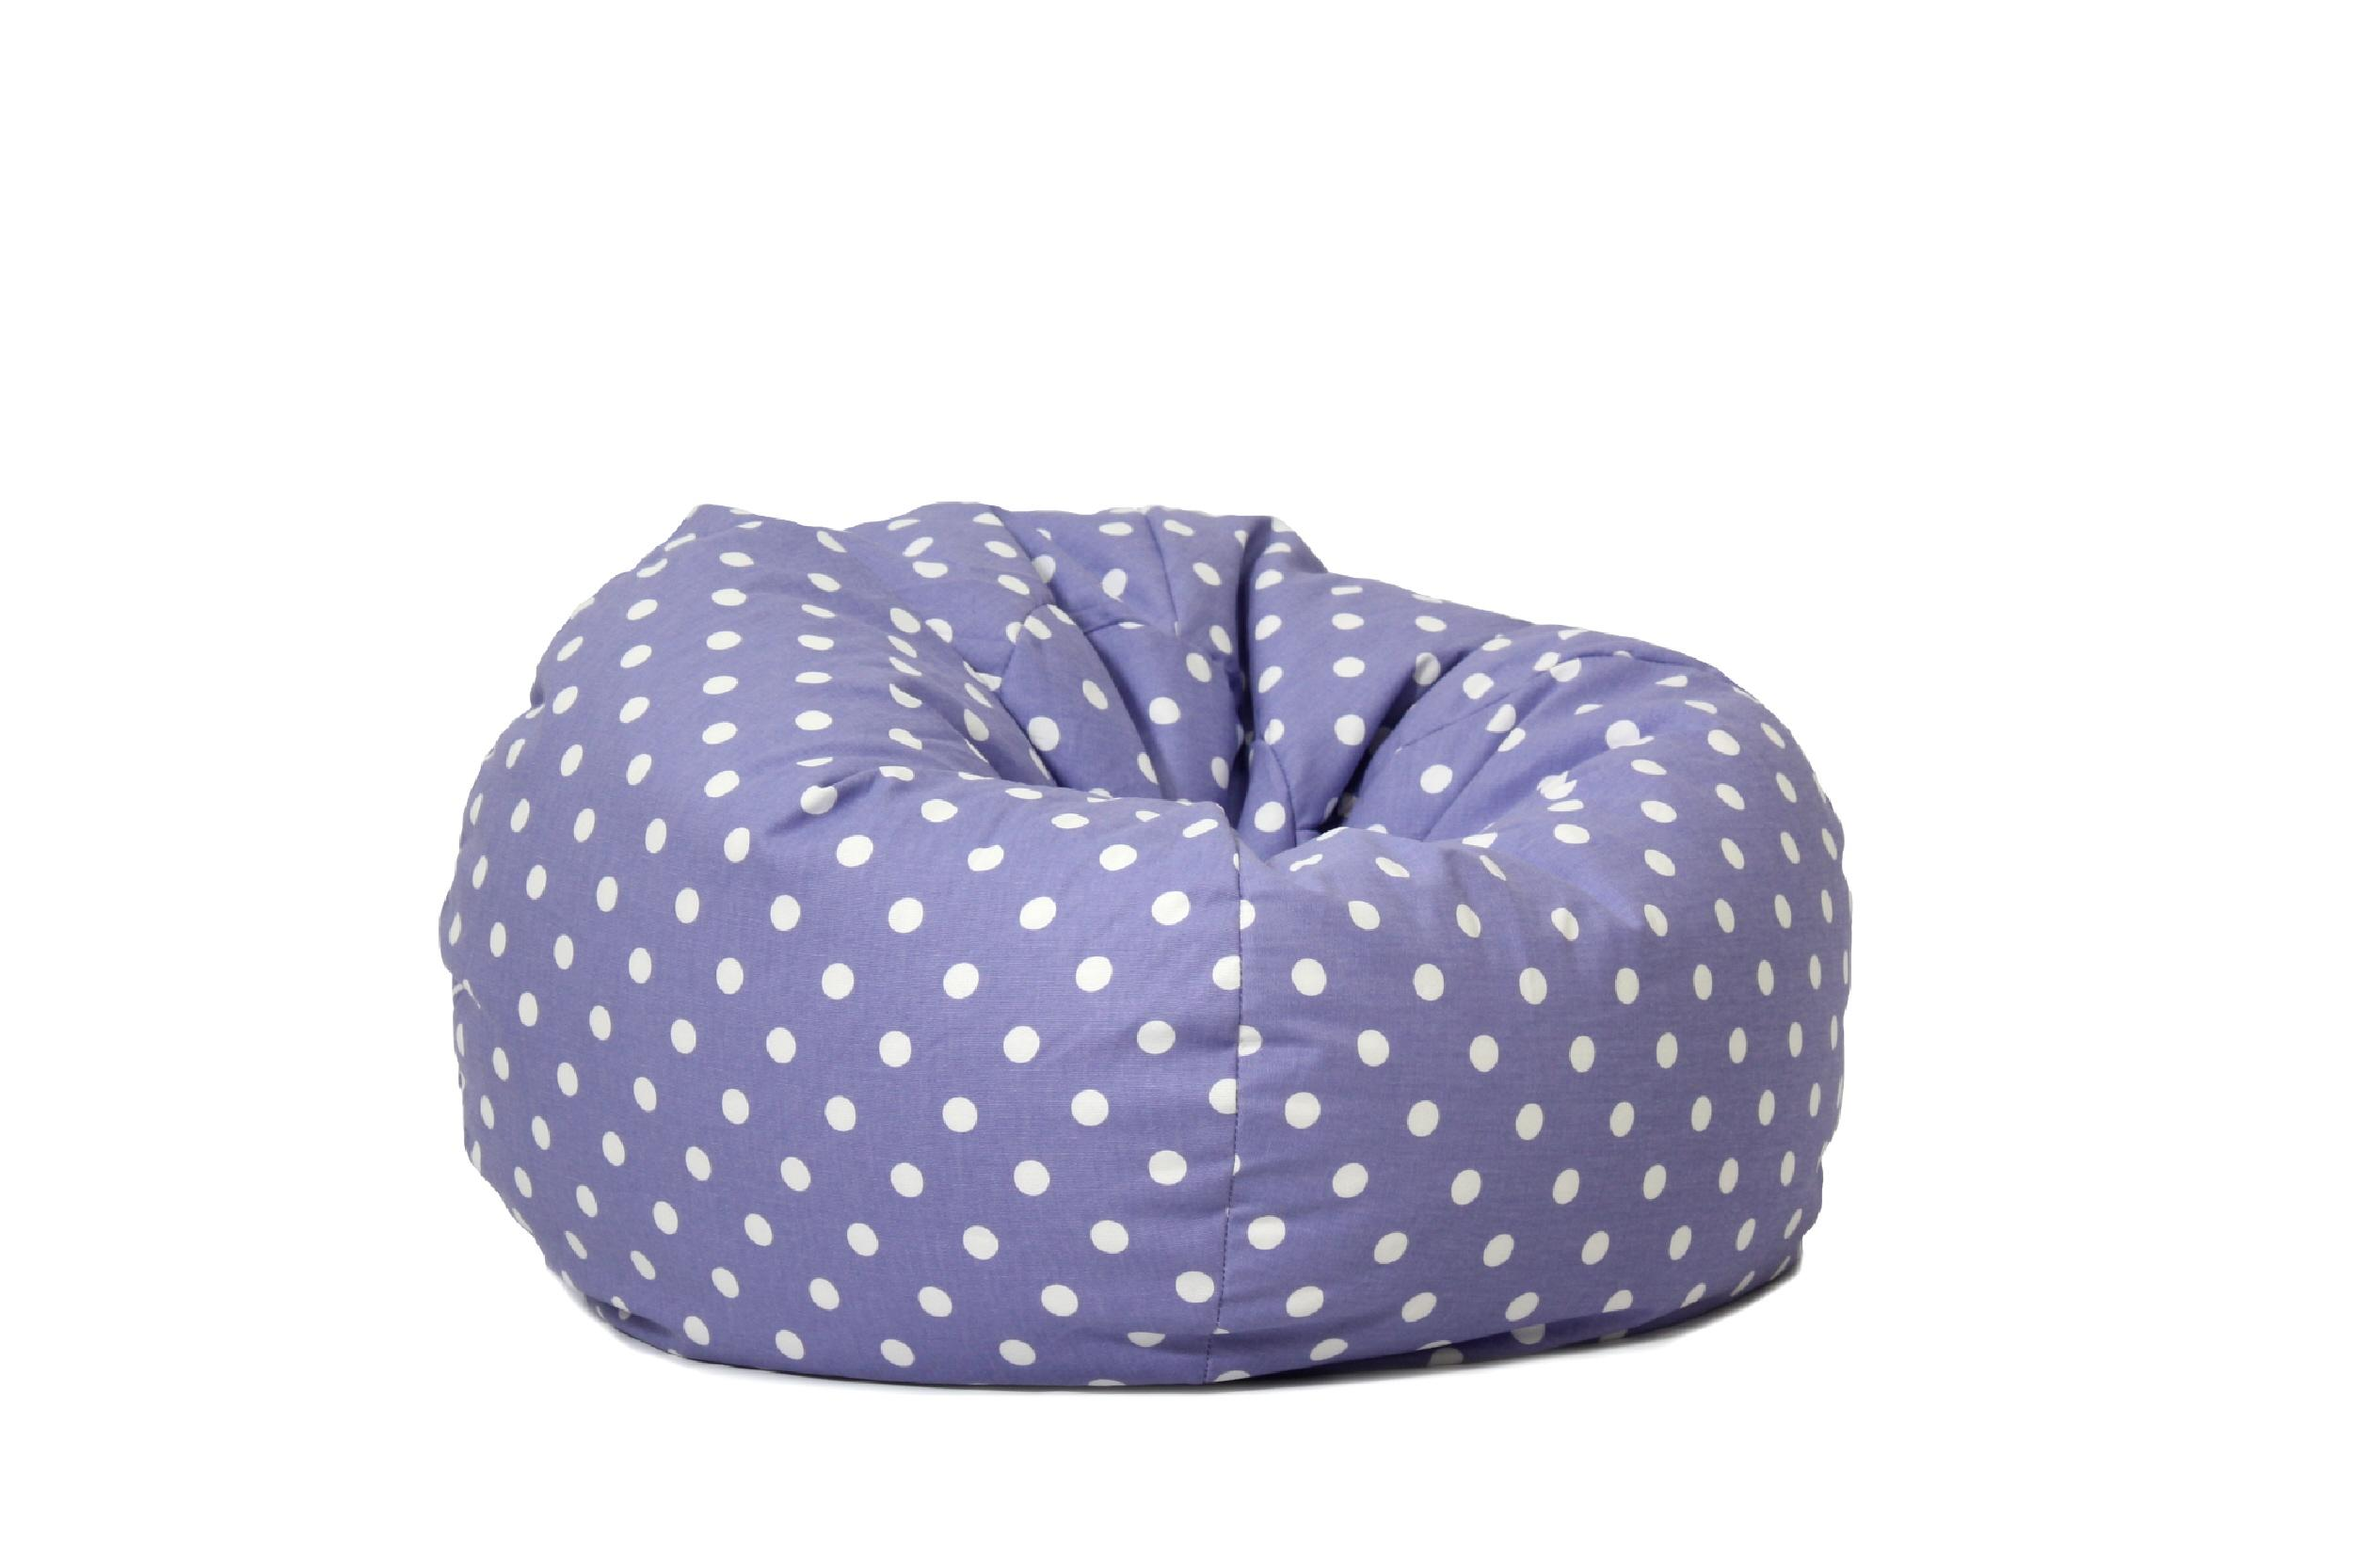 How to make bean bag chairs - Beansack Polka Dot Purple Bean Bag Chair